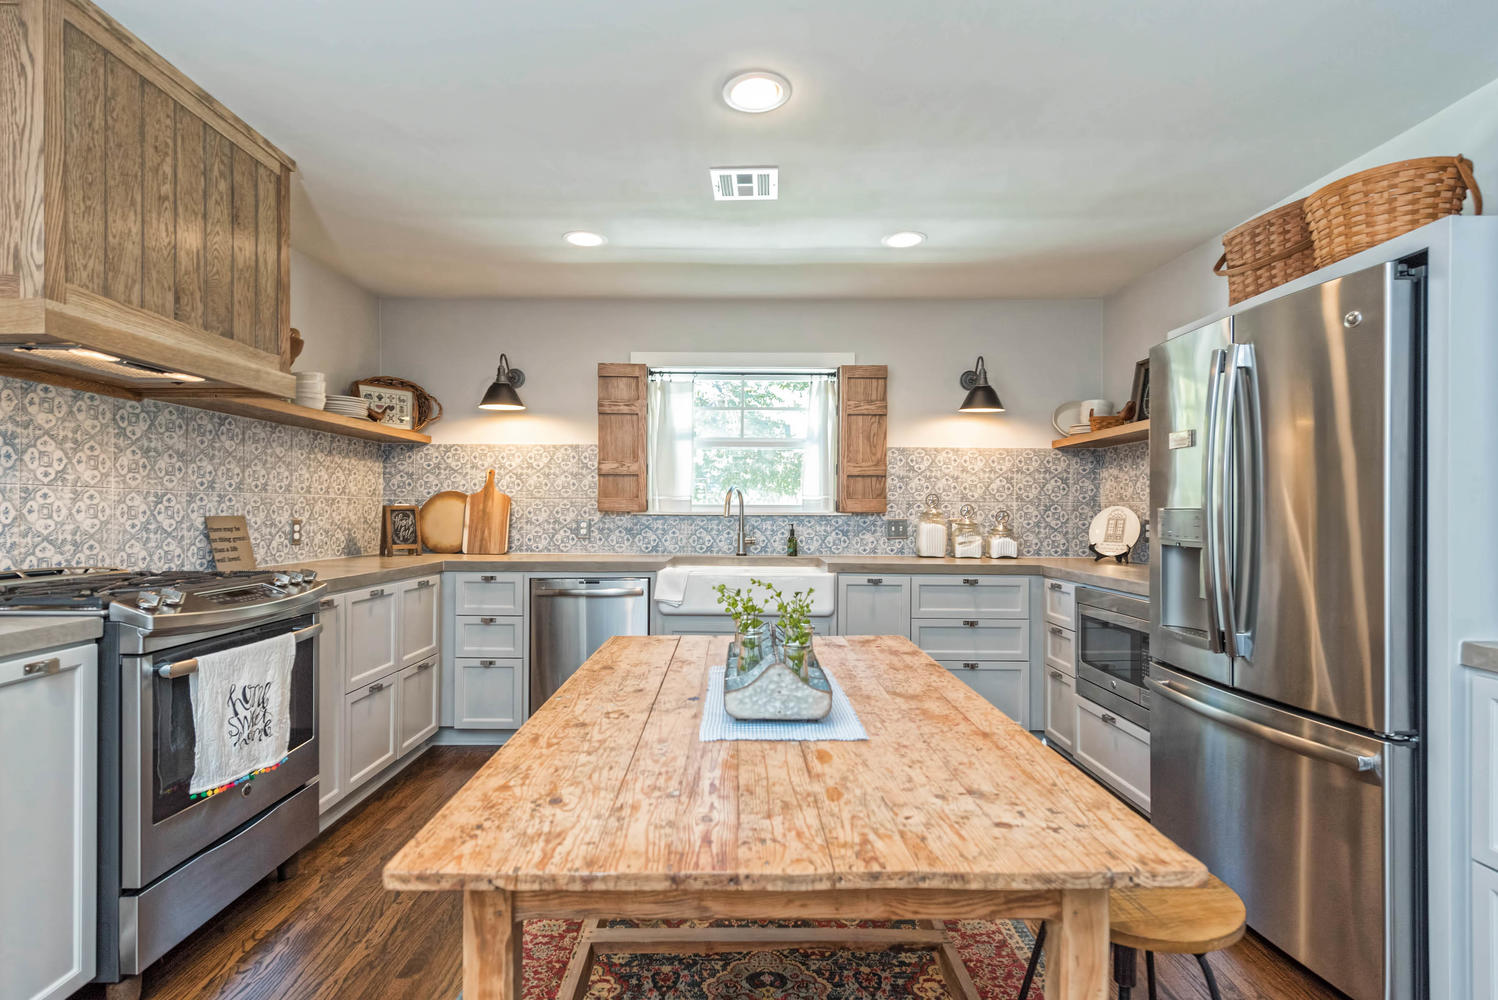 Country Kitchen with wooden island and patterned tiles